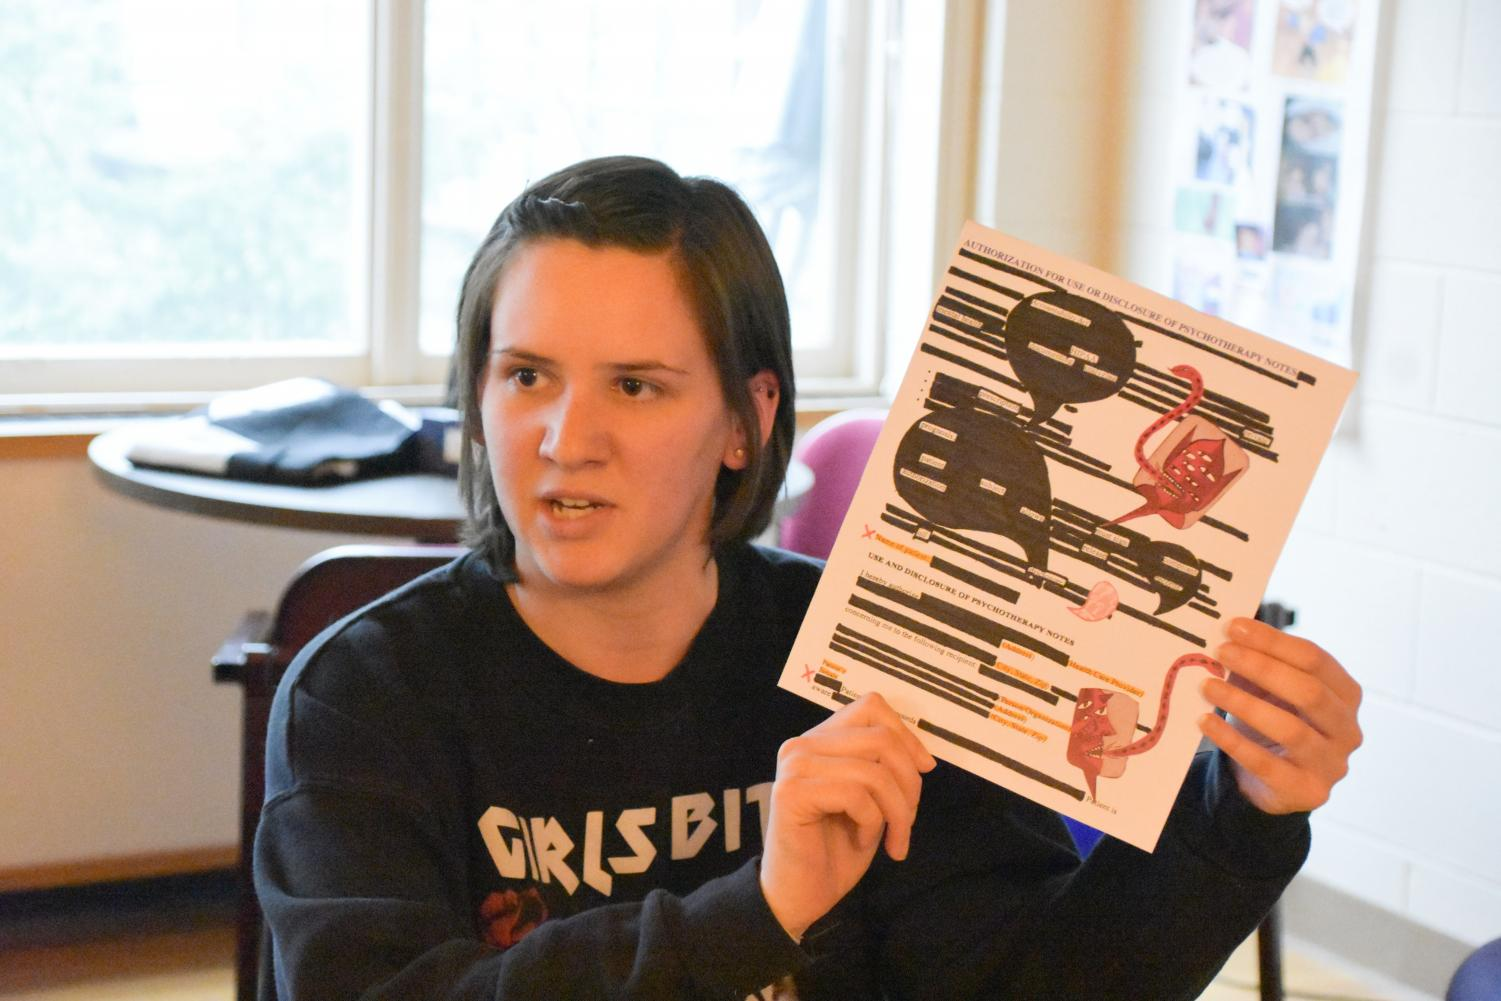 UWO alumna Brooke Berrens participates in blackout poetry for reproductive rights on Thursday.